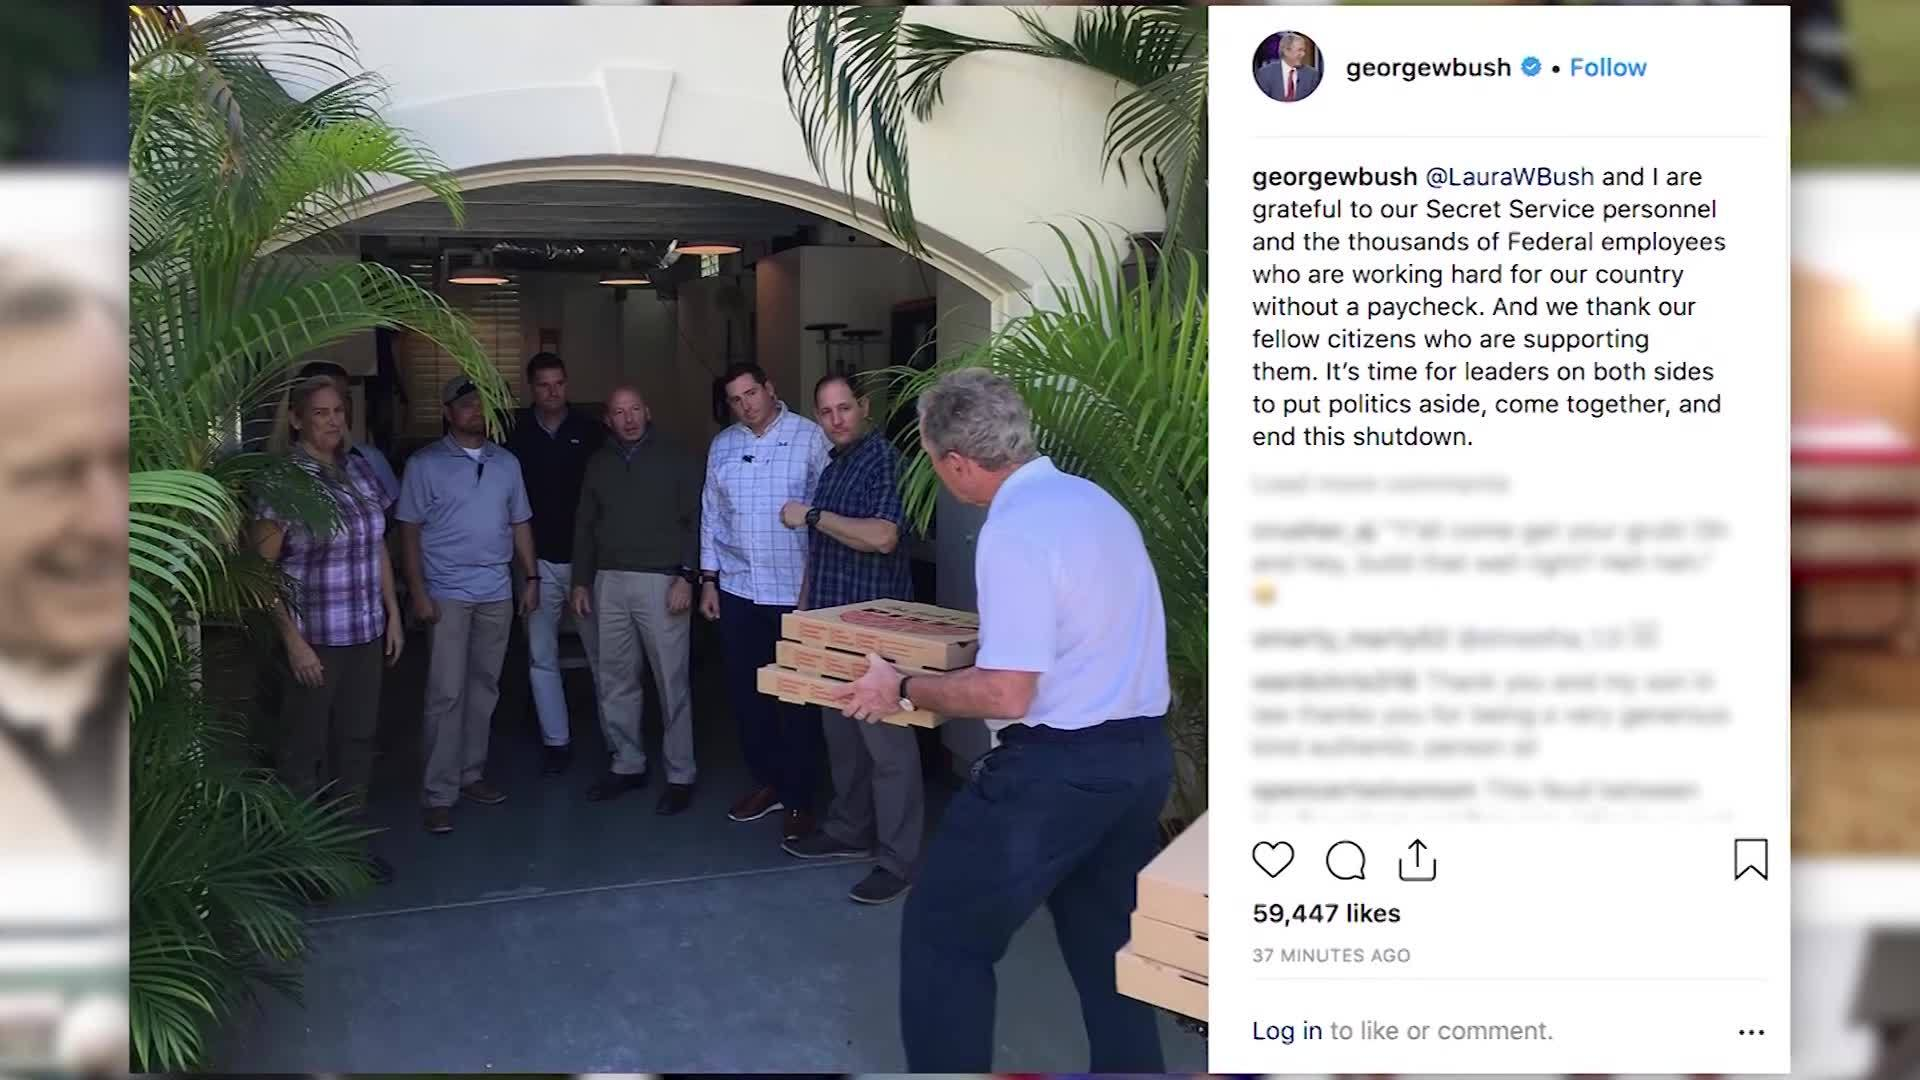 VIDEO: President George W. Bush delivers pizza to his Secret Service agents during shutdown